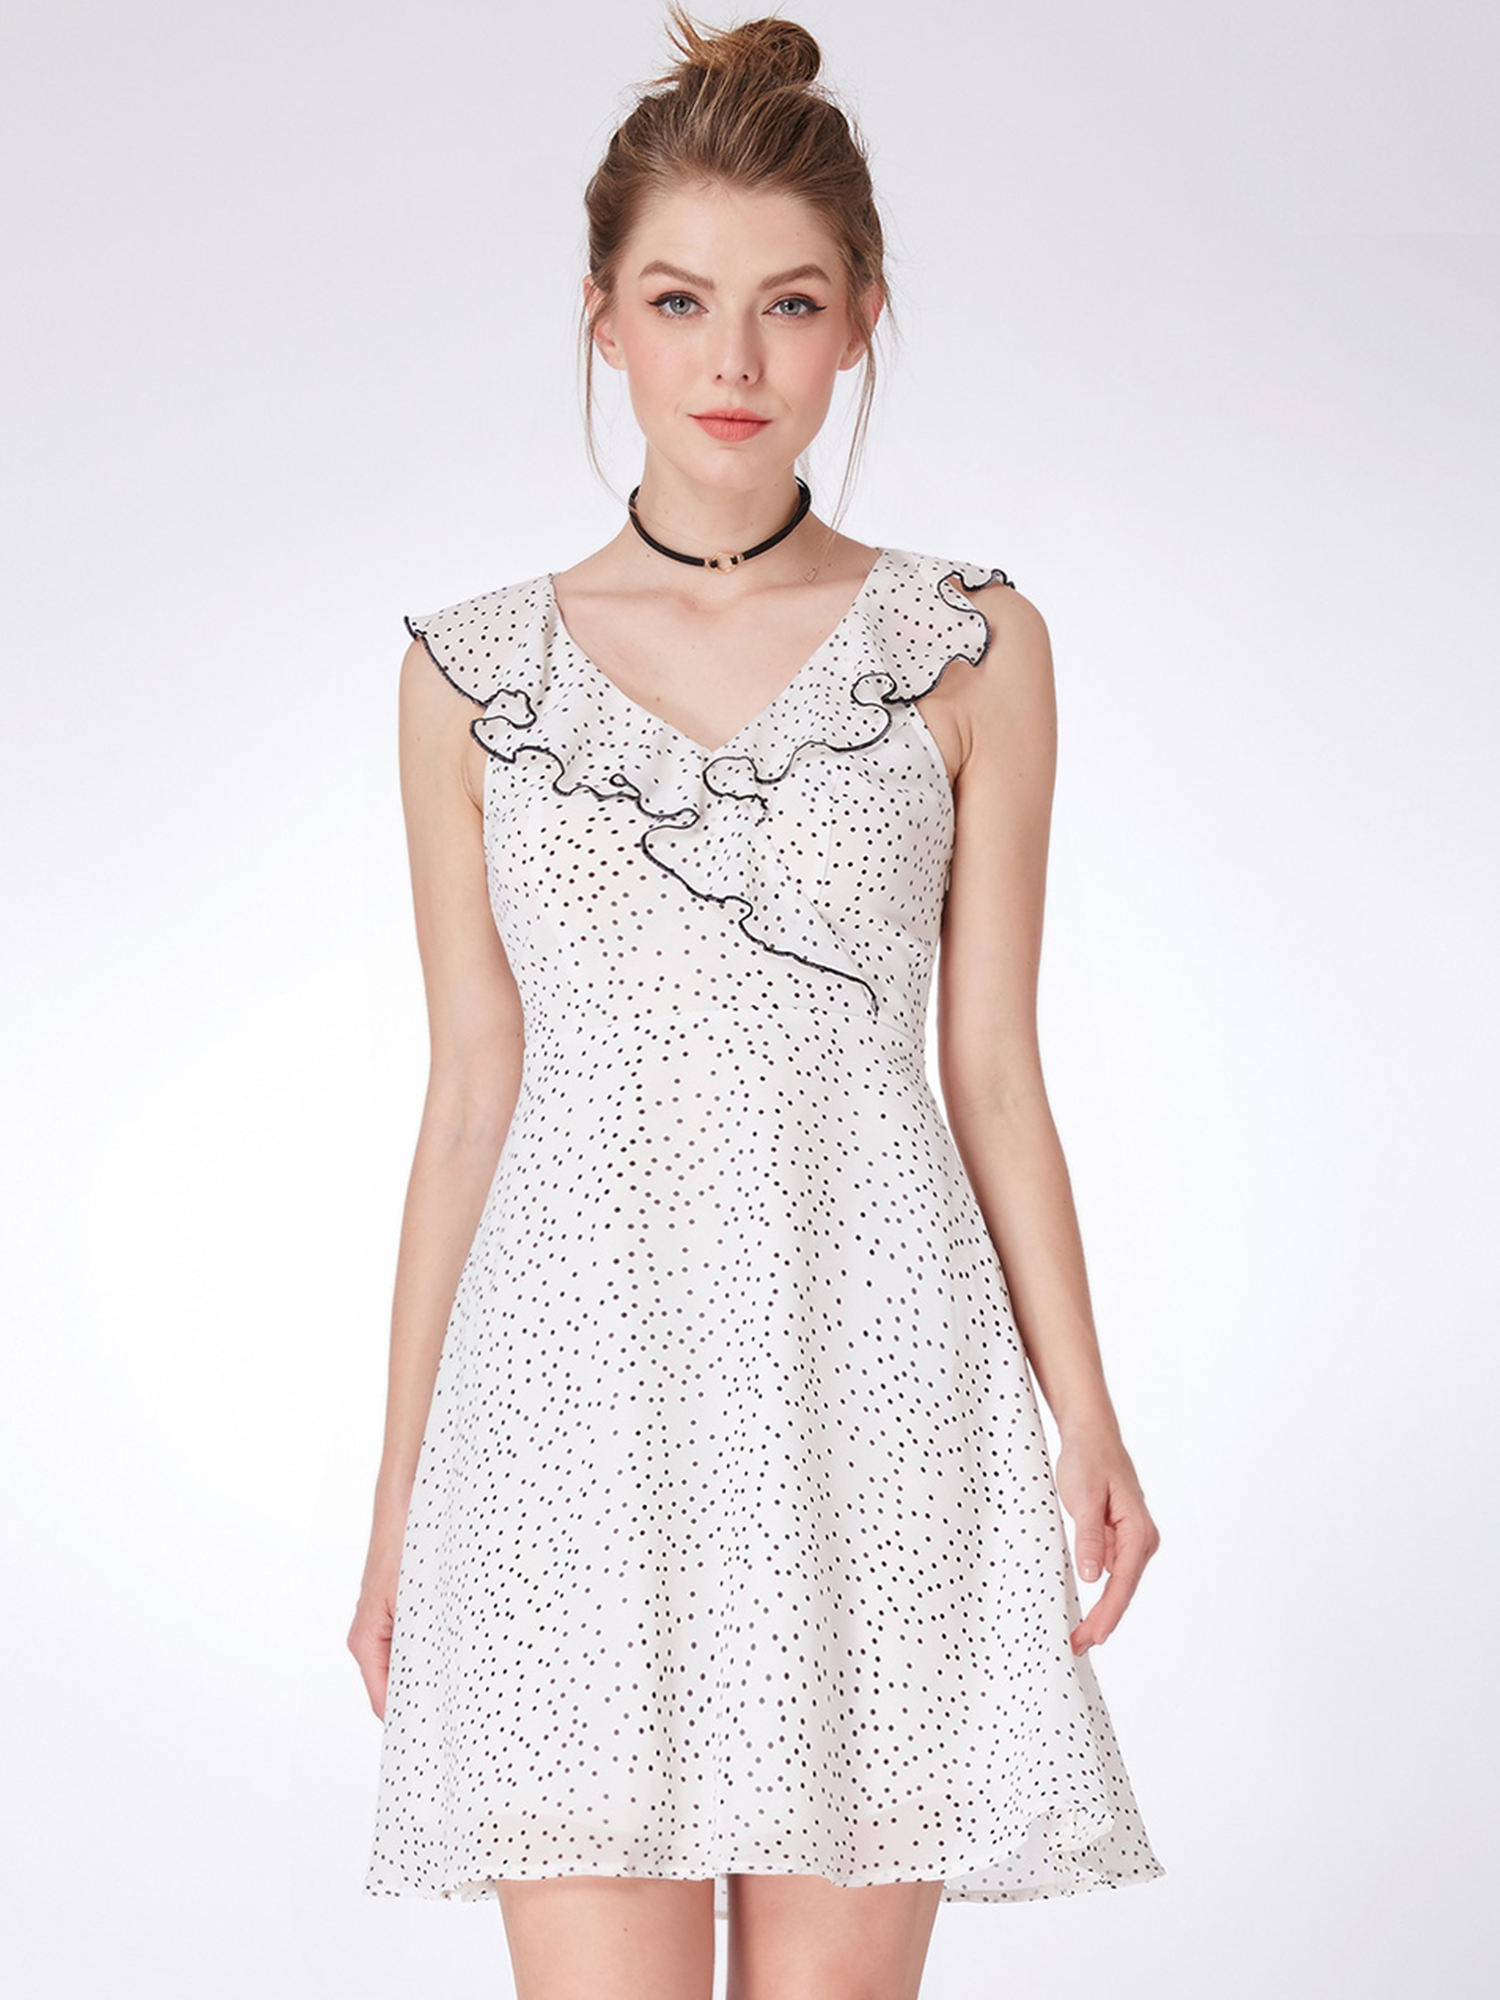 76c3e328030 Details about Alisa Pan US Short Fashion Sleeveless Spotted Casual Dresses  Summer Skirts 05986